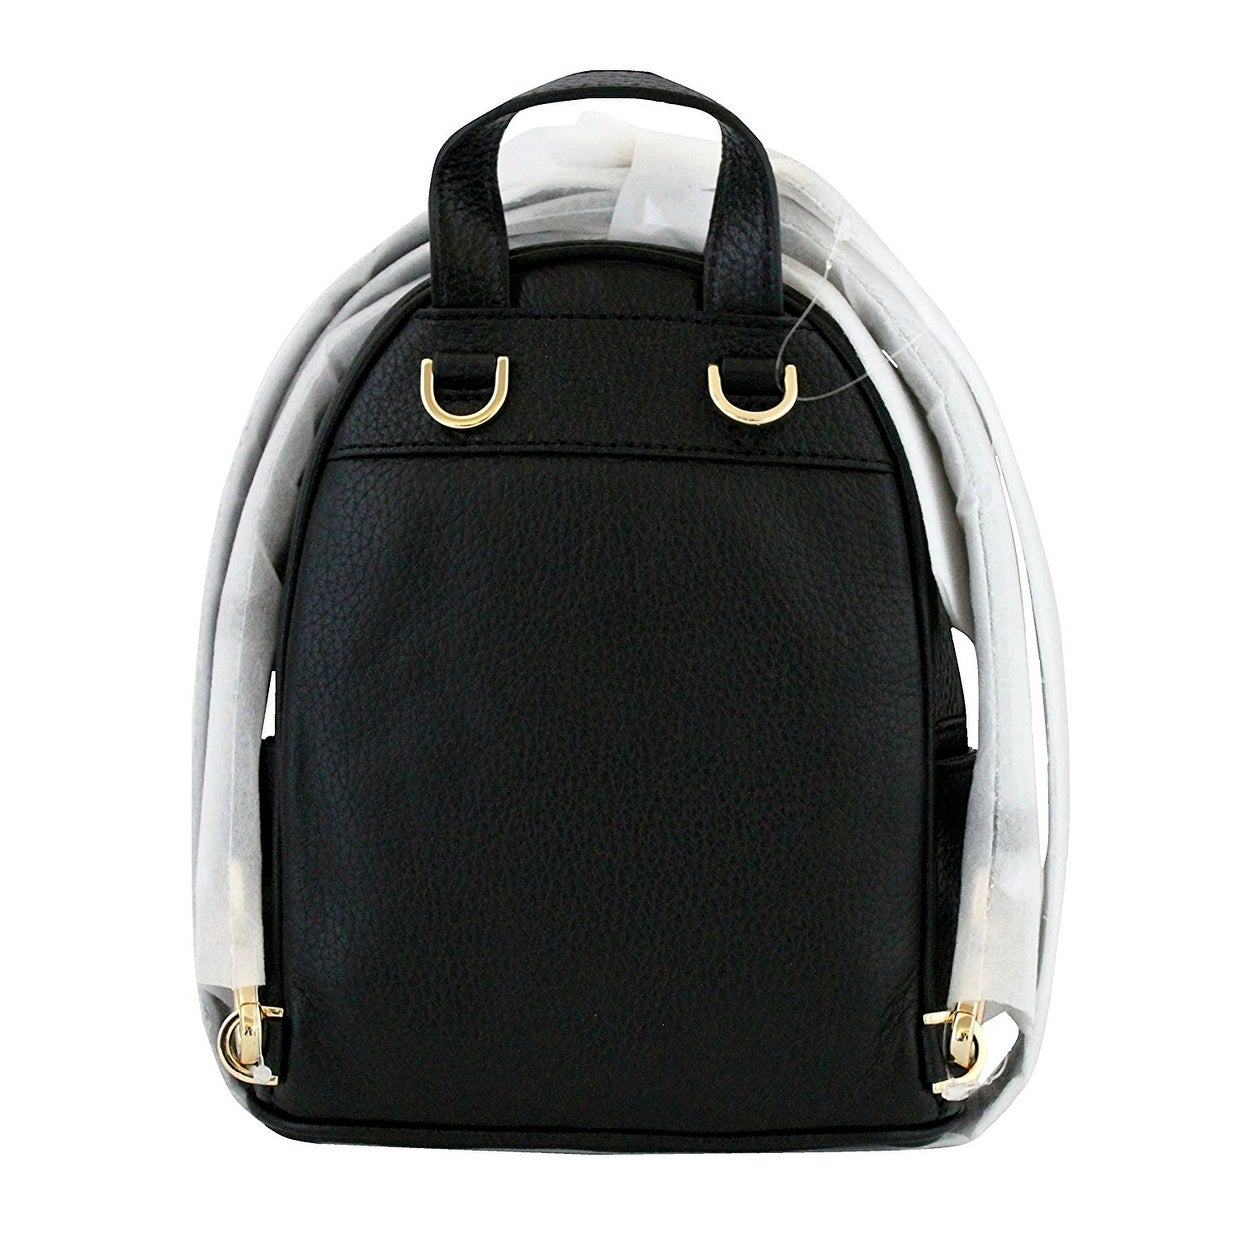 703c0d5243c2 Michael Kors Rhea Extra Small Backpack Black- Fenix Toulouse Handball